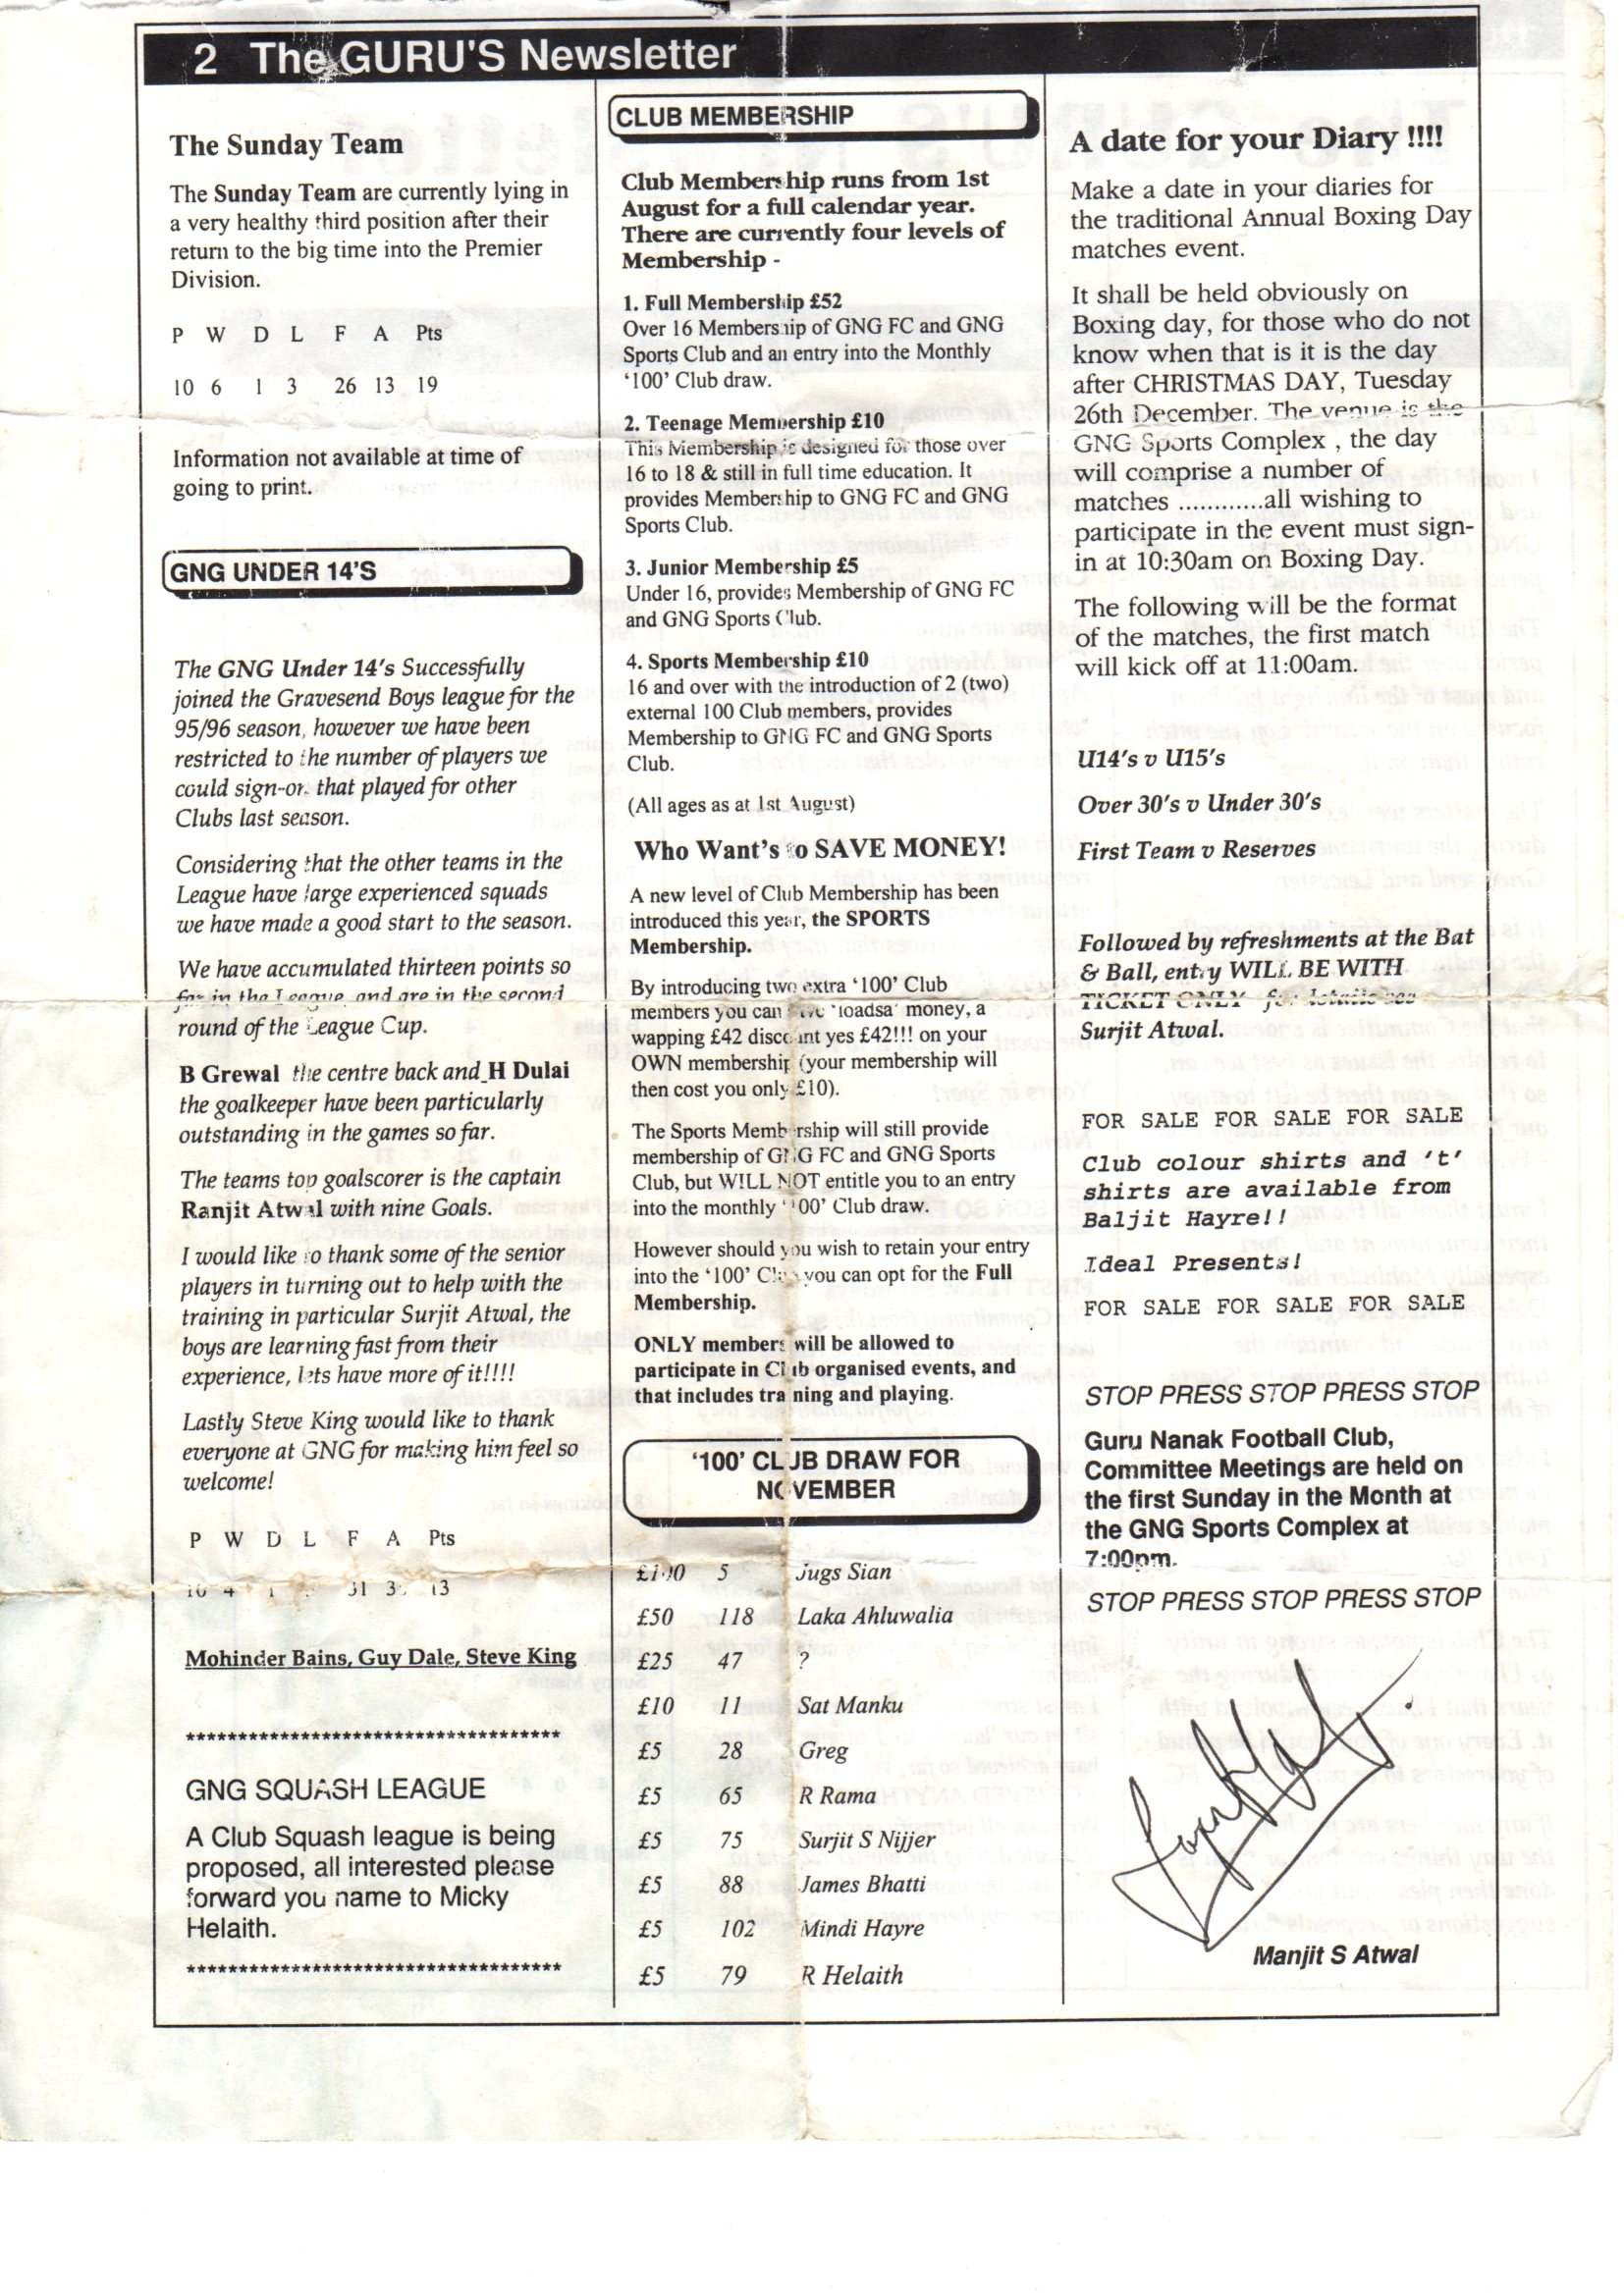 Old News letter from 1995 - page 2